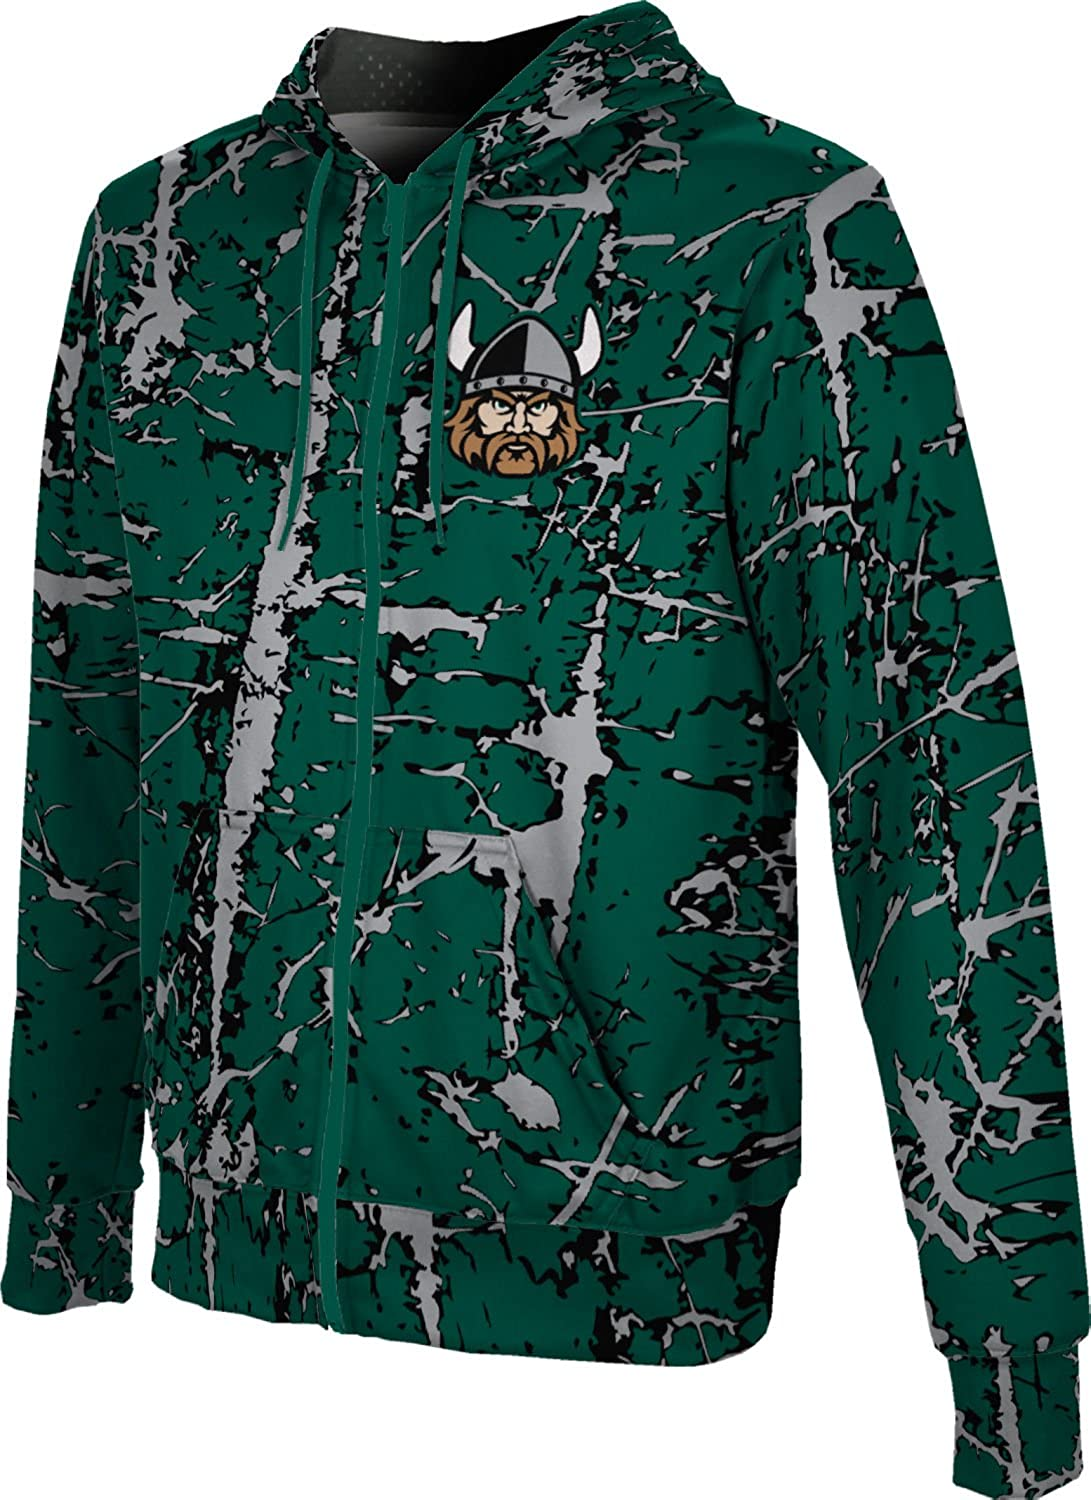 Challenge the lowest price ProSphere Free shipping Cleveland State University Zipper School Boys' Hoodie